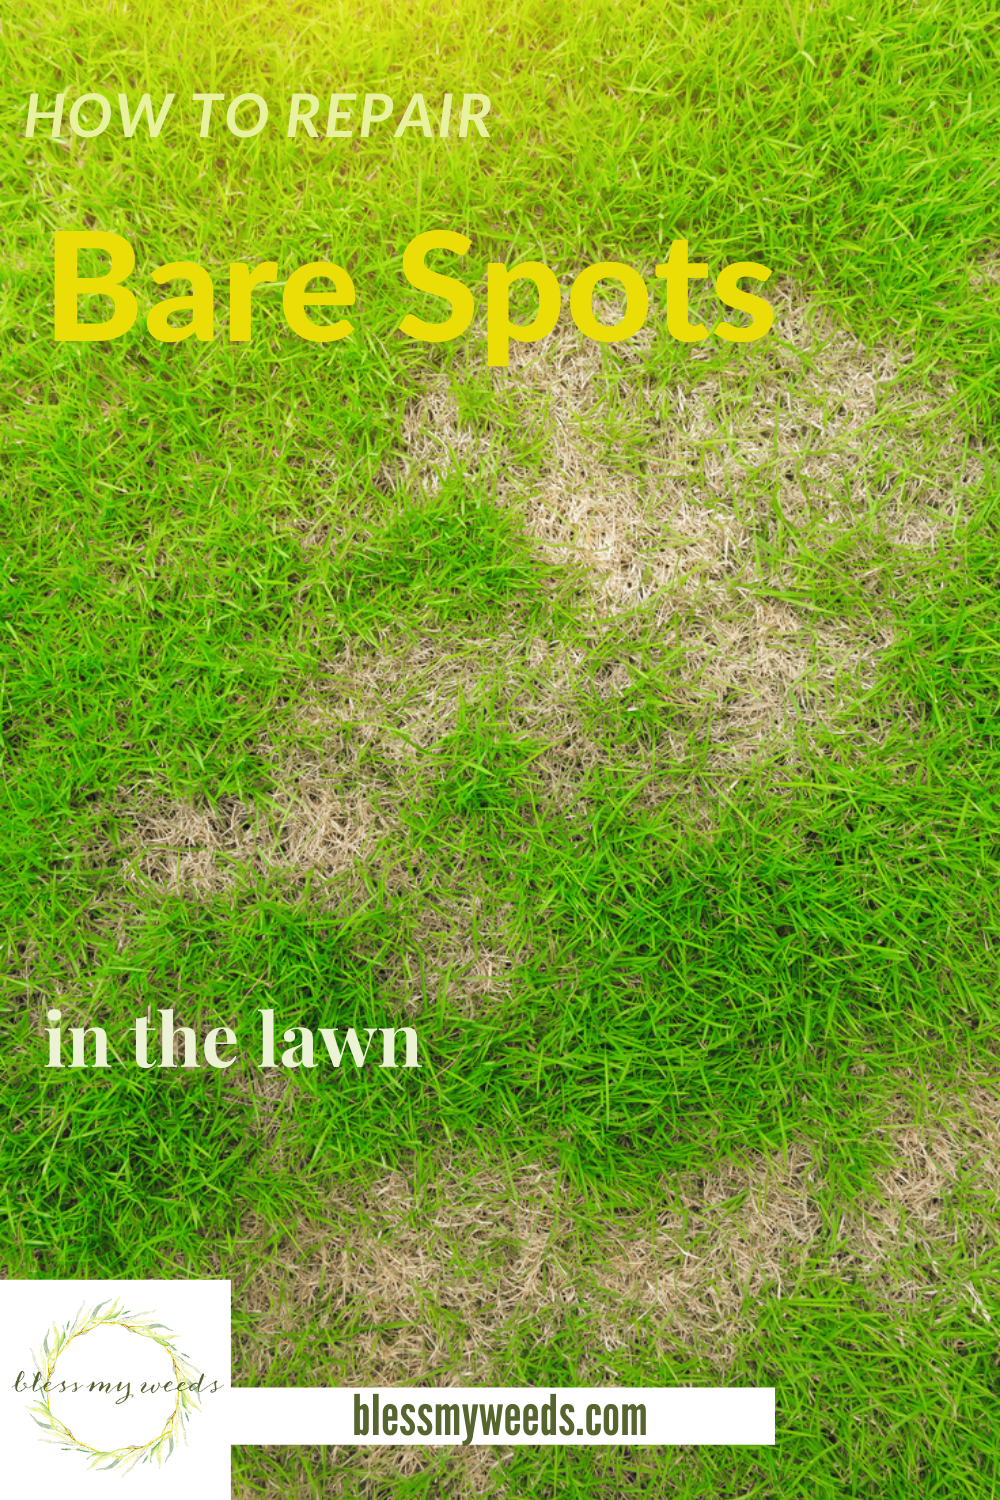 How to repair bare spots in the lawn. Know the tips to improve your lawn and stop despairing over those pesky bare spots! #blessmyweedsblog #howtorepairbarespotsinthelawn